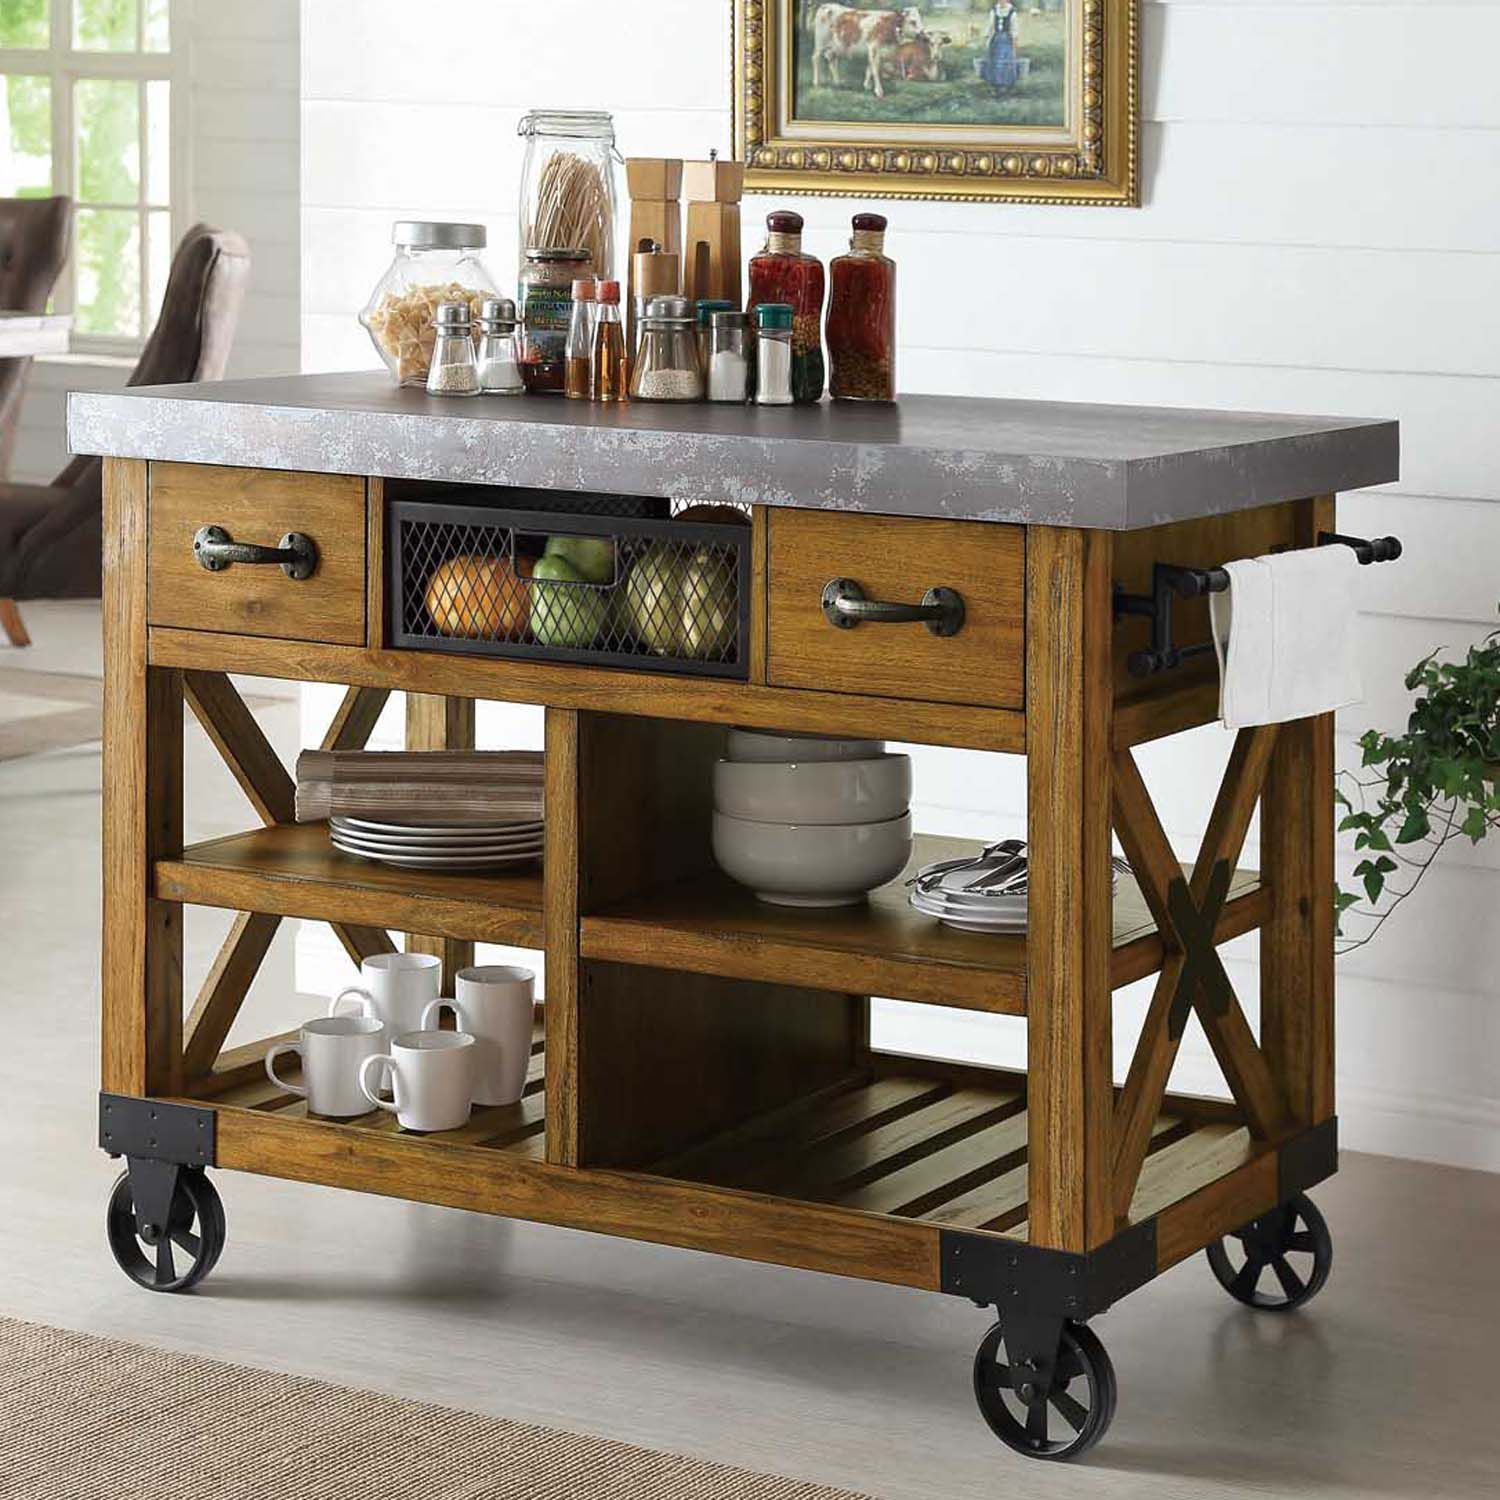 kitchen serving cart wine bottle themed decor rachel sam s club stuff to look at in 2019